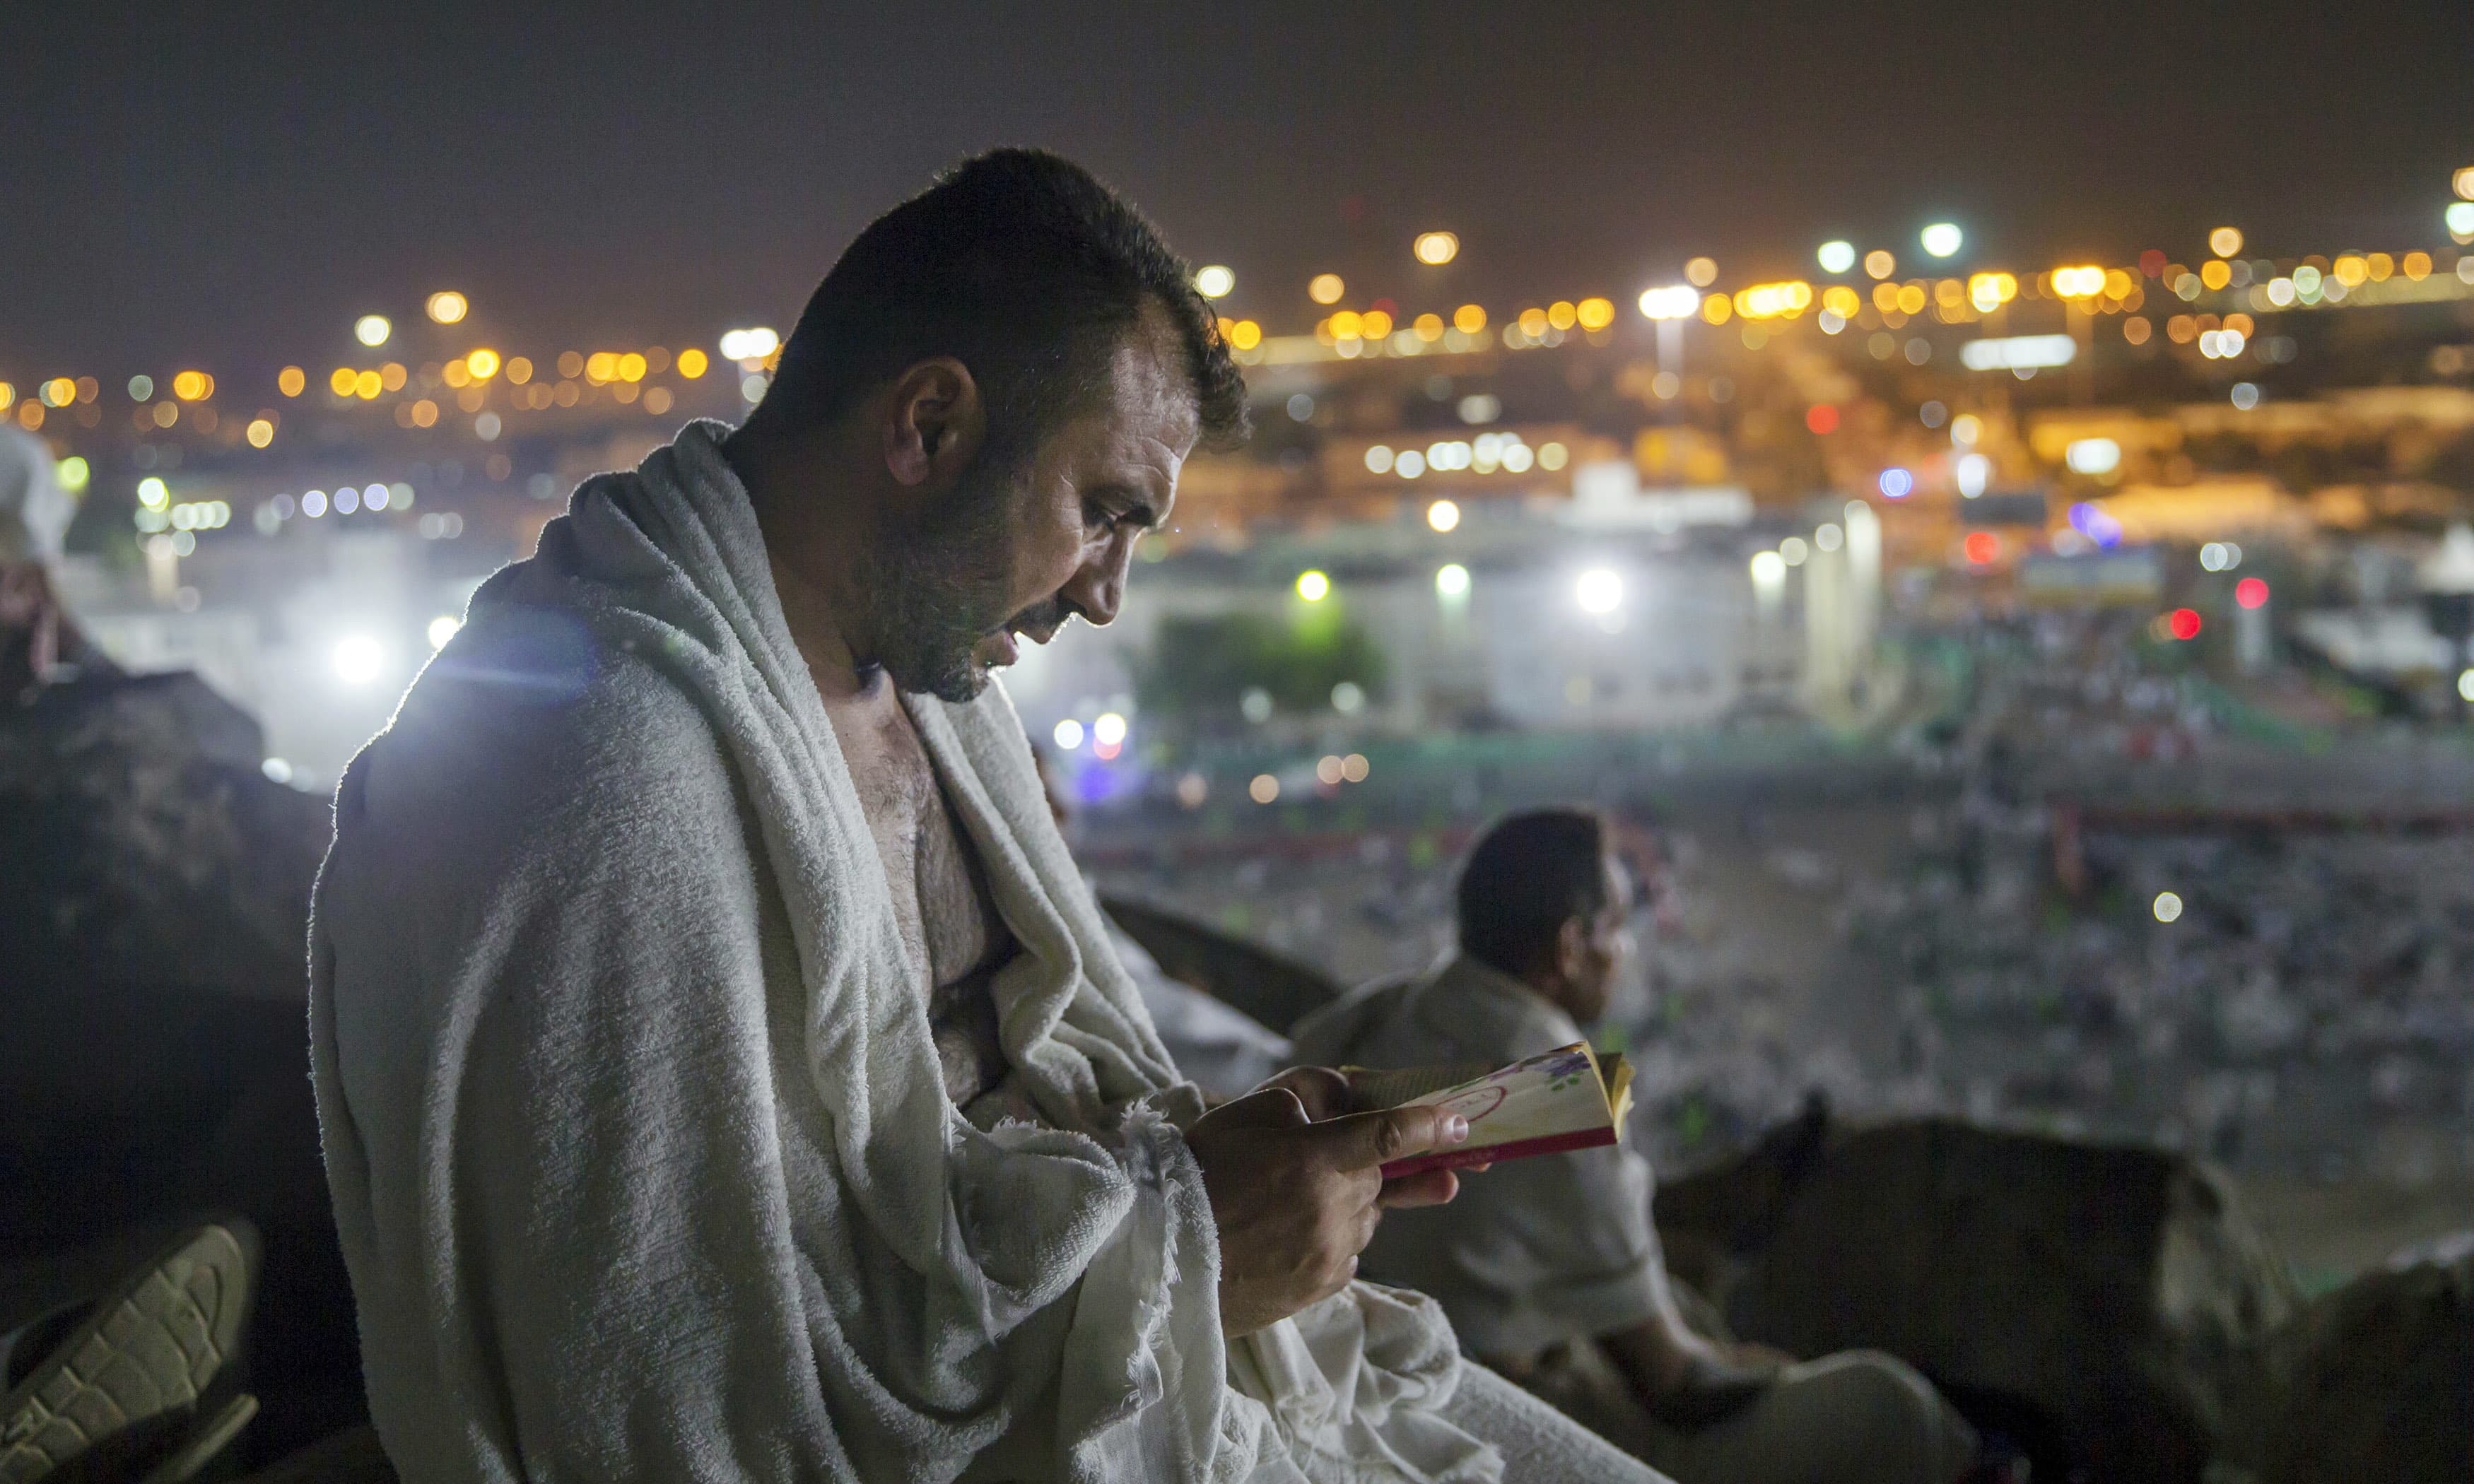 A pilgrim prays at Jabal Al Rahma, or the mountain of forgiveness, at Arafat for the annual Haj pilgrimage. —AP